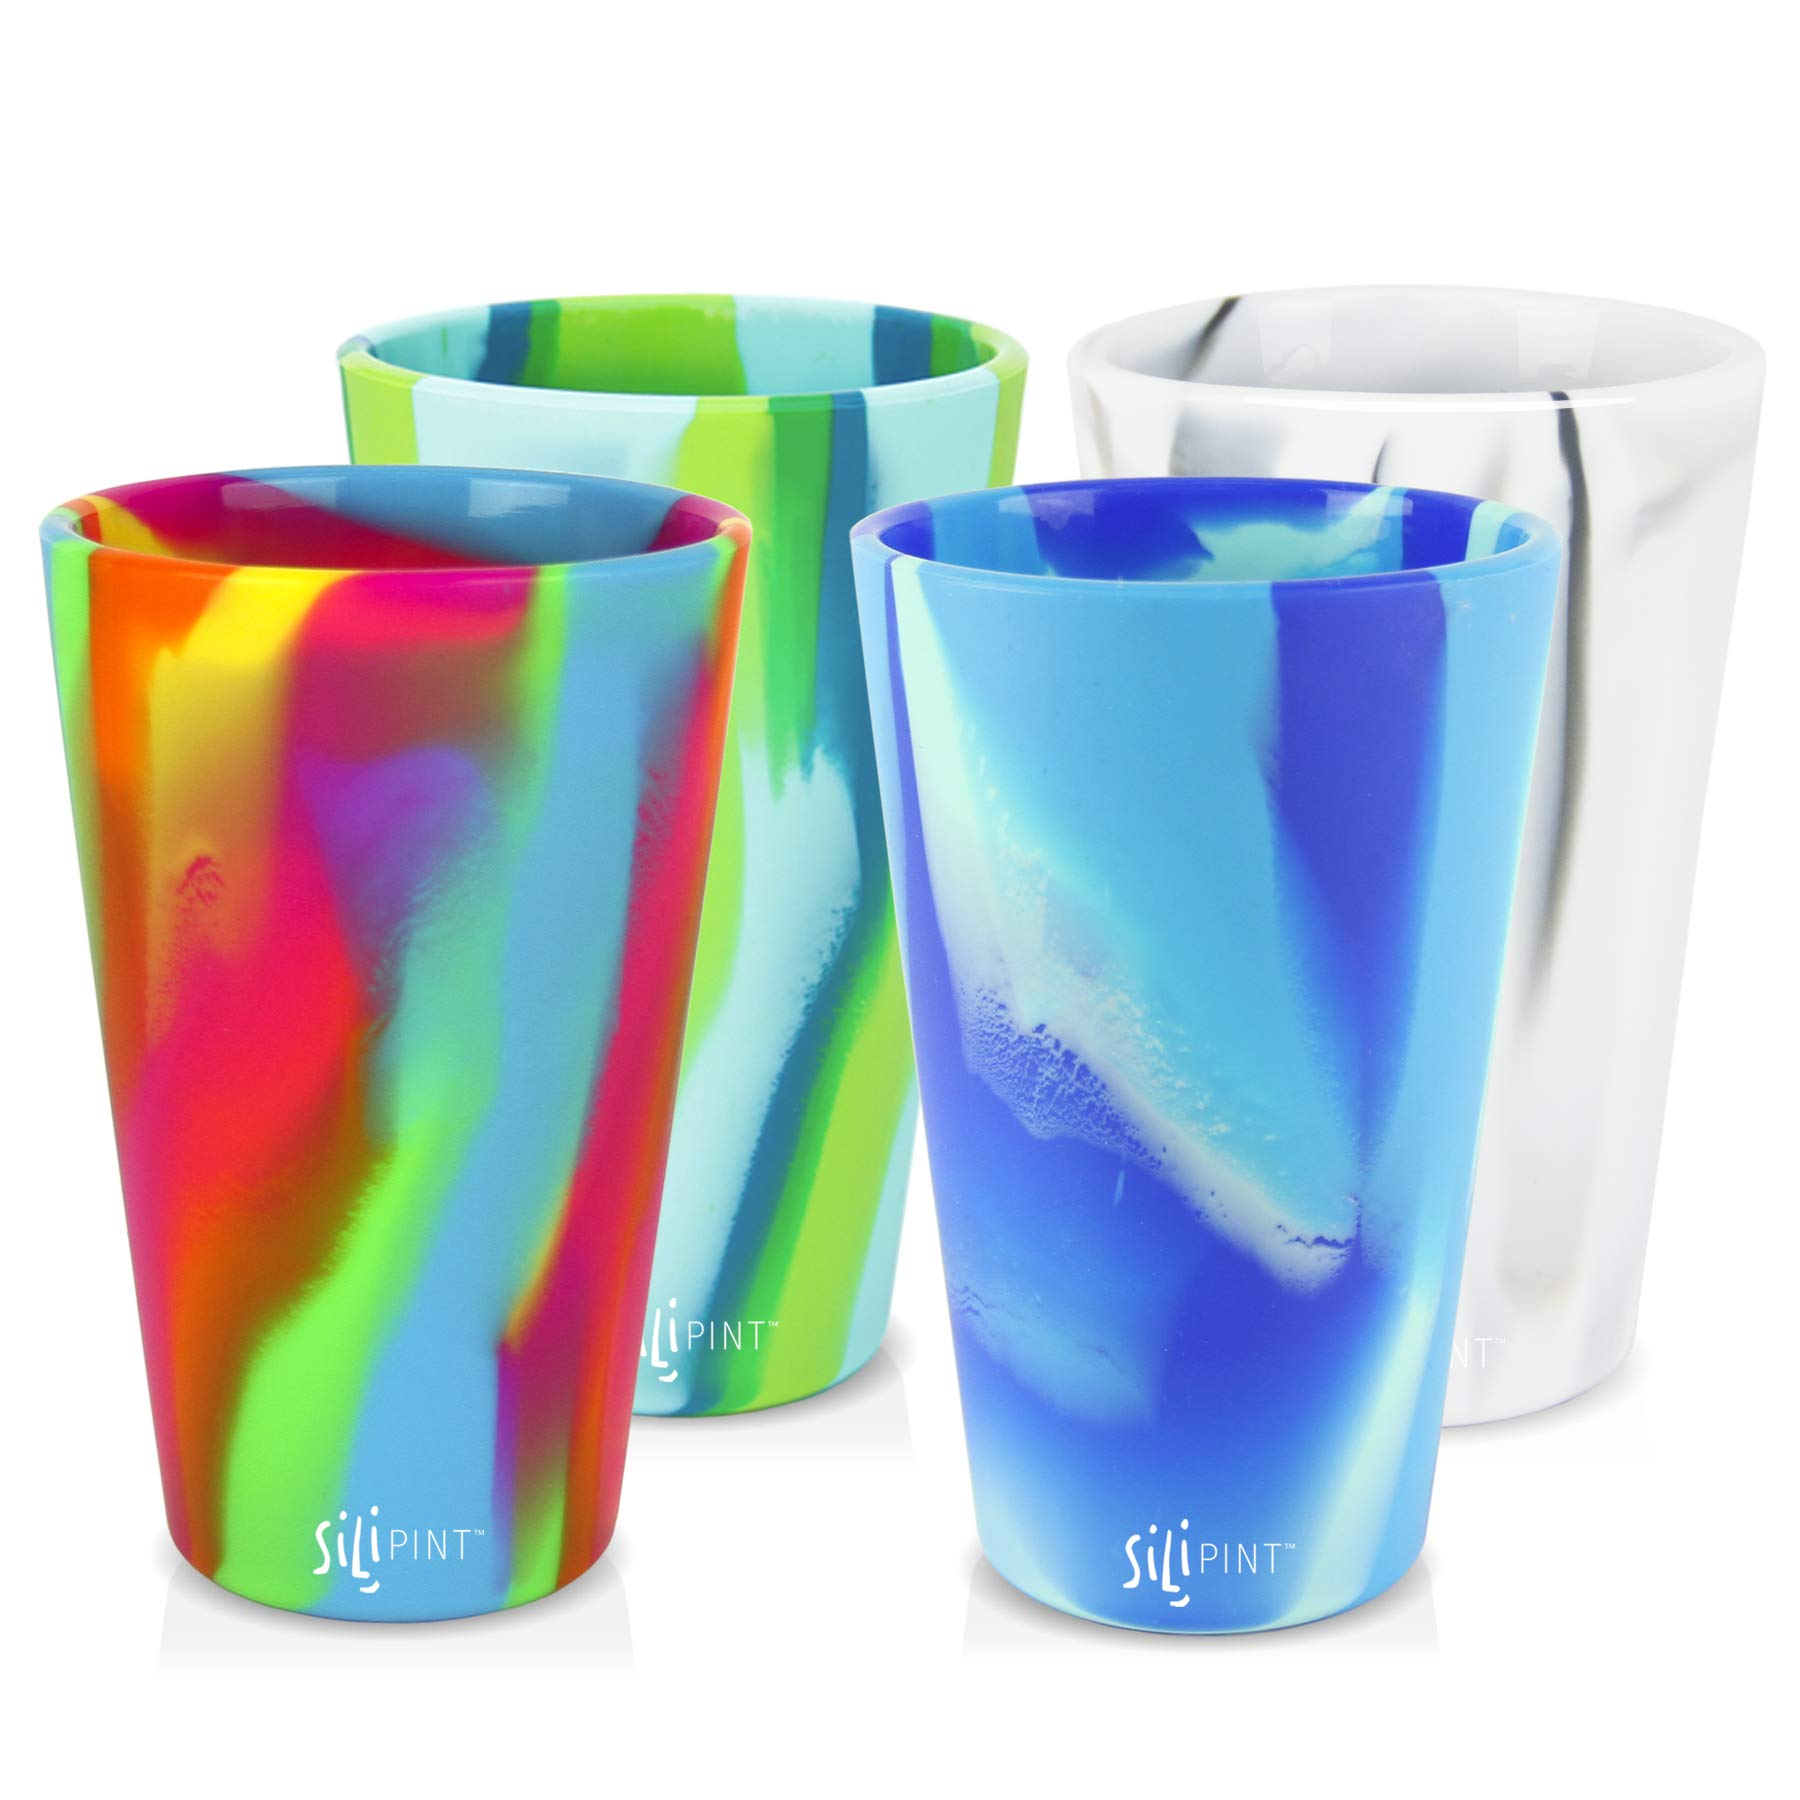 Silipint Silicone Pint Glass Set, Patented, BPA-Free, Shatter-proof, Unbreakable Silicone Cup Drinkware (4-Pack, Tie-Dye Variety) by Silipint